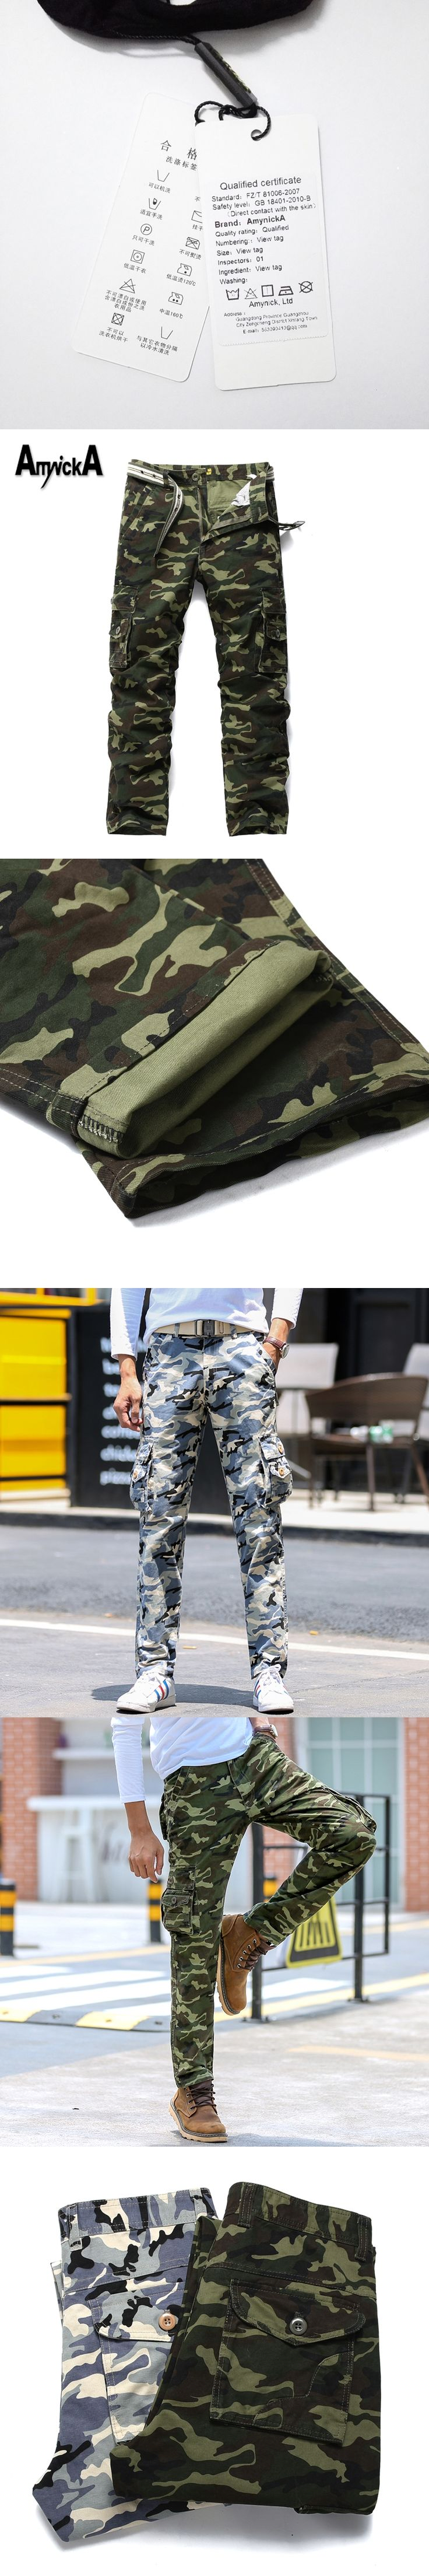 AmynickA Camouflage Pants Mens Militar Tactical Cargo Pants Outdoor Military Pants Army Sport Pants Men Hiking Hunting LDS673